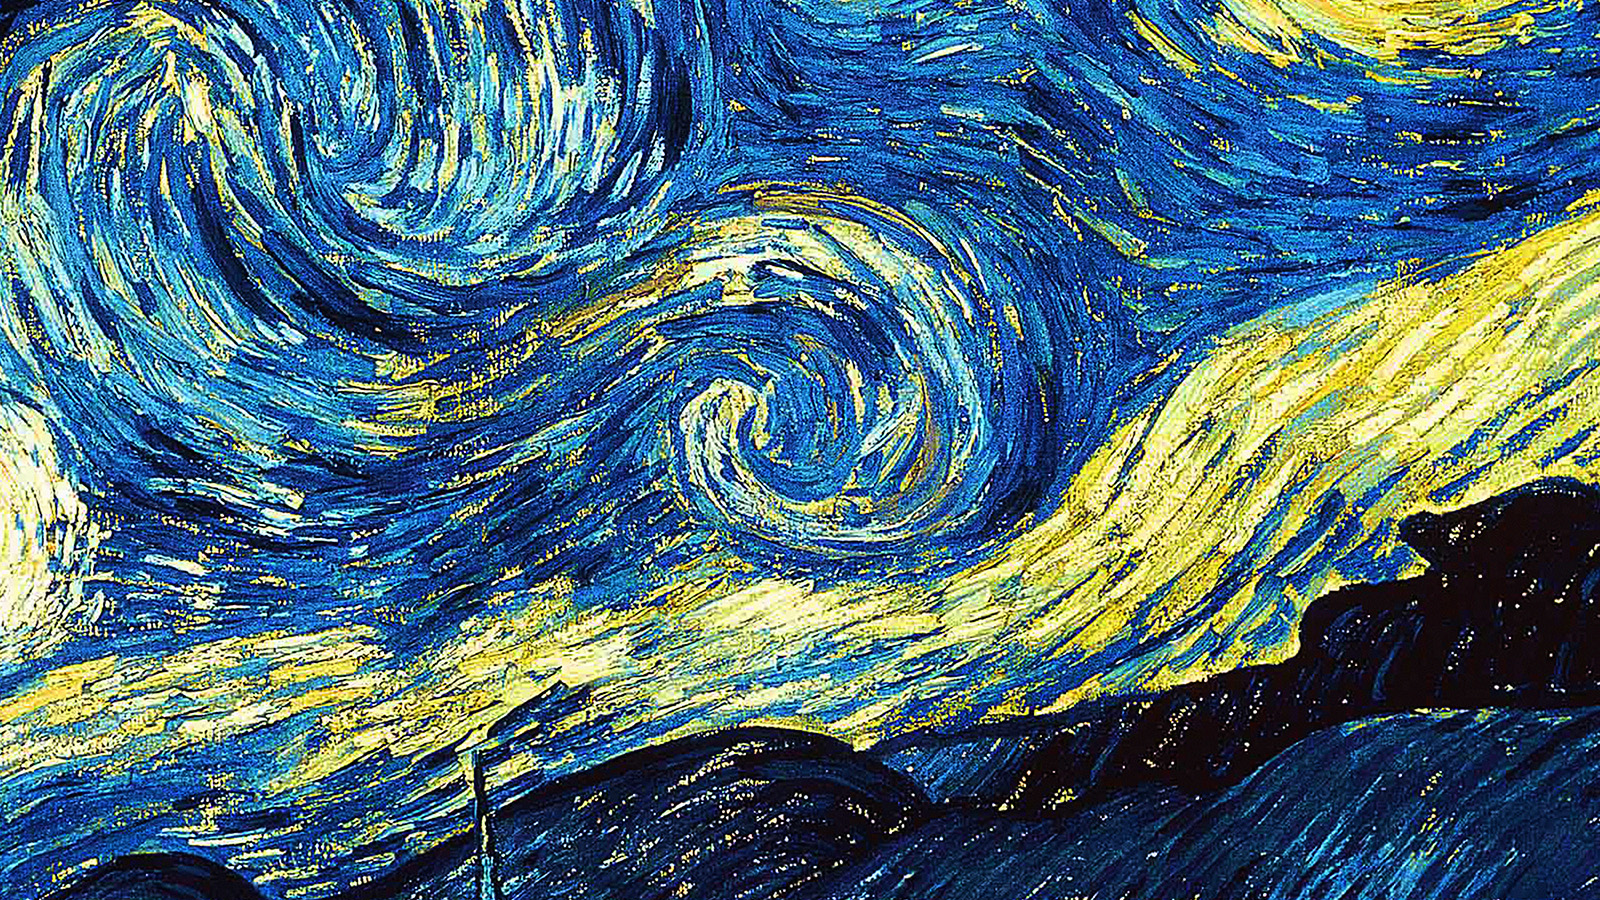 art essay on van gogh Karyn davis 9/23/14 contemporary art research paper outline outline – vincent van gogh thesis: vincent van gogh might have been considered a failure in his.